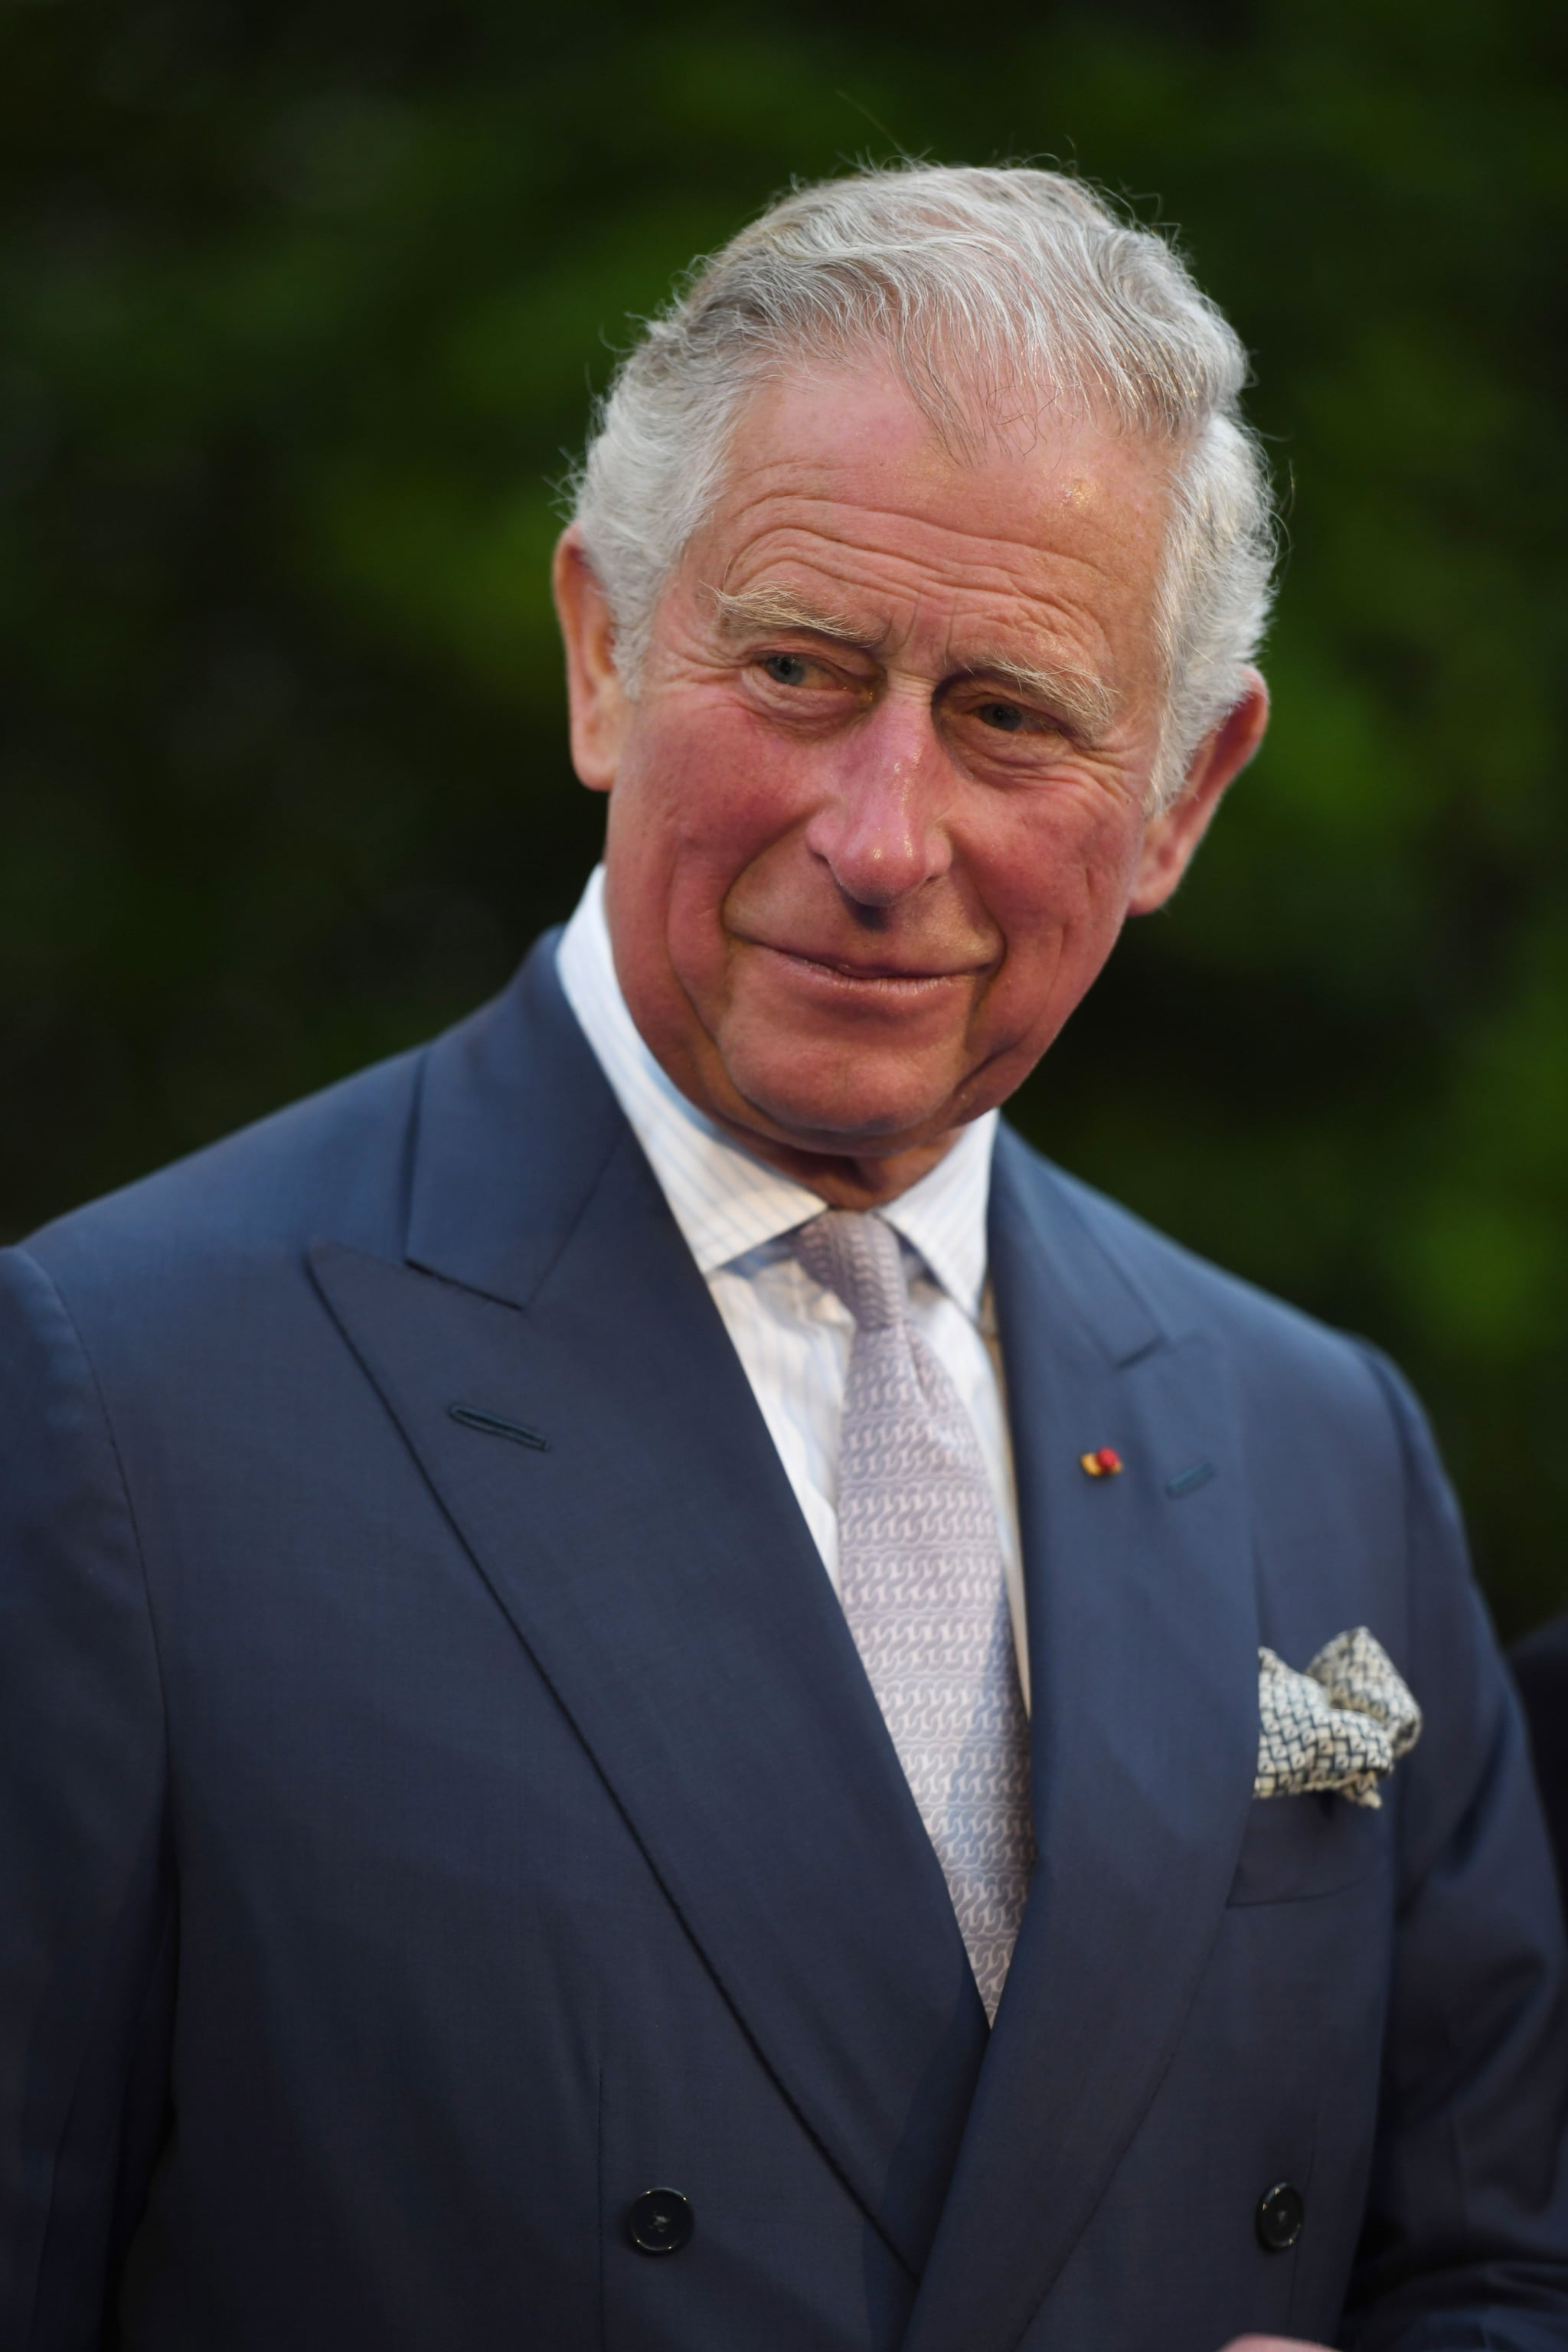 Britains Charles, Prince of Wales, attends a reception in the Villa Massena garden, in Nice, on May 7, 2018. - Britain's Prince Charles, Prince of Wales, and his wife Britain's Camilla on May 7, 2018 paid tribute to the victims 2016 Bastille Day attack in Nice which killed 86 people and injured more than 400. (Photo by JEAN-PIERRE AMET / POOL / AFP)        (Photo credit should read JEAN-PIERRE AMET/AFP/Getty Images)